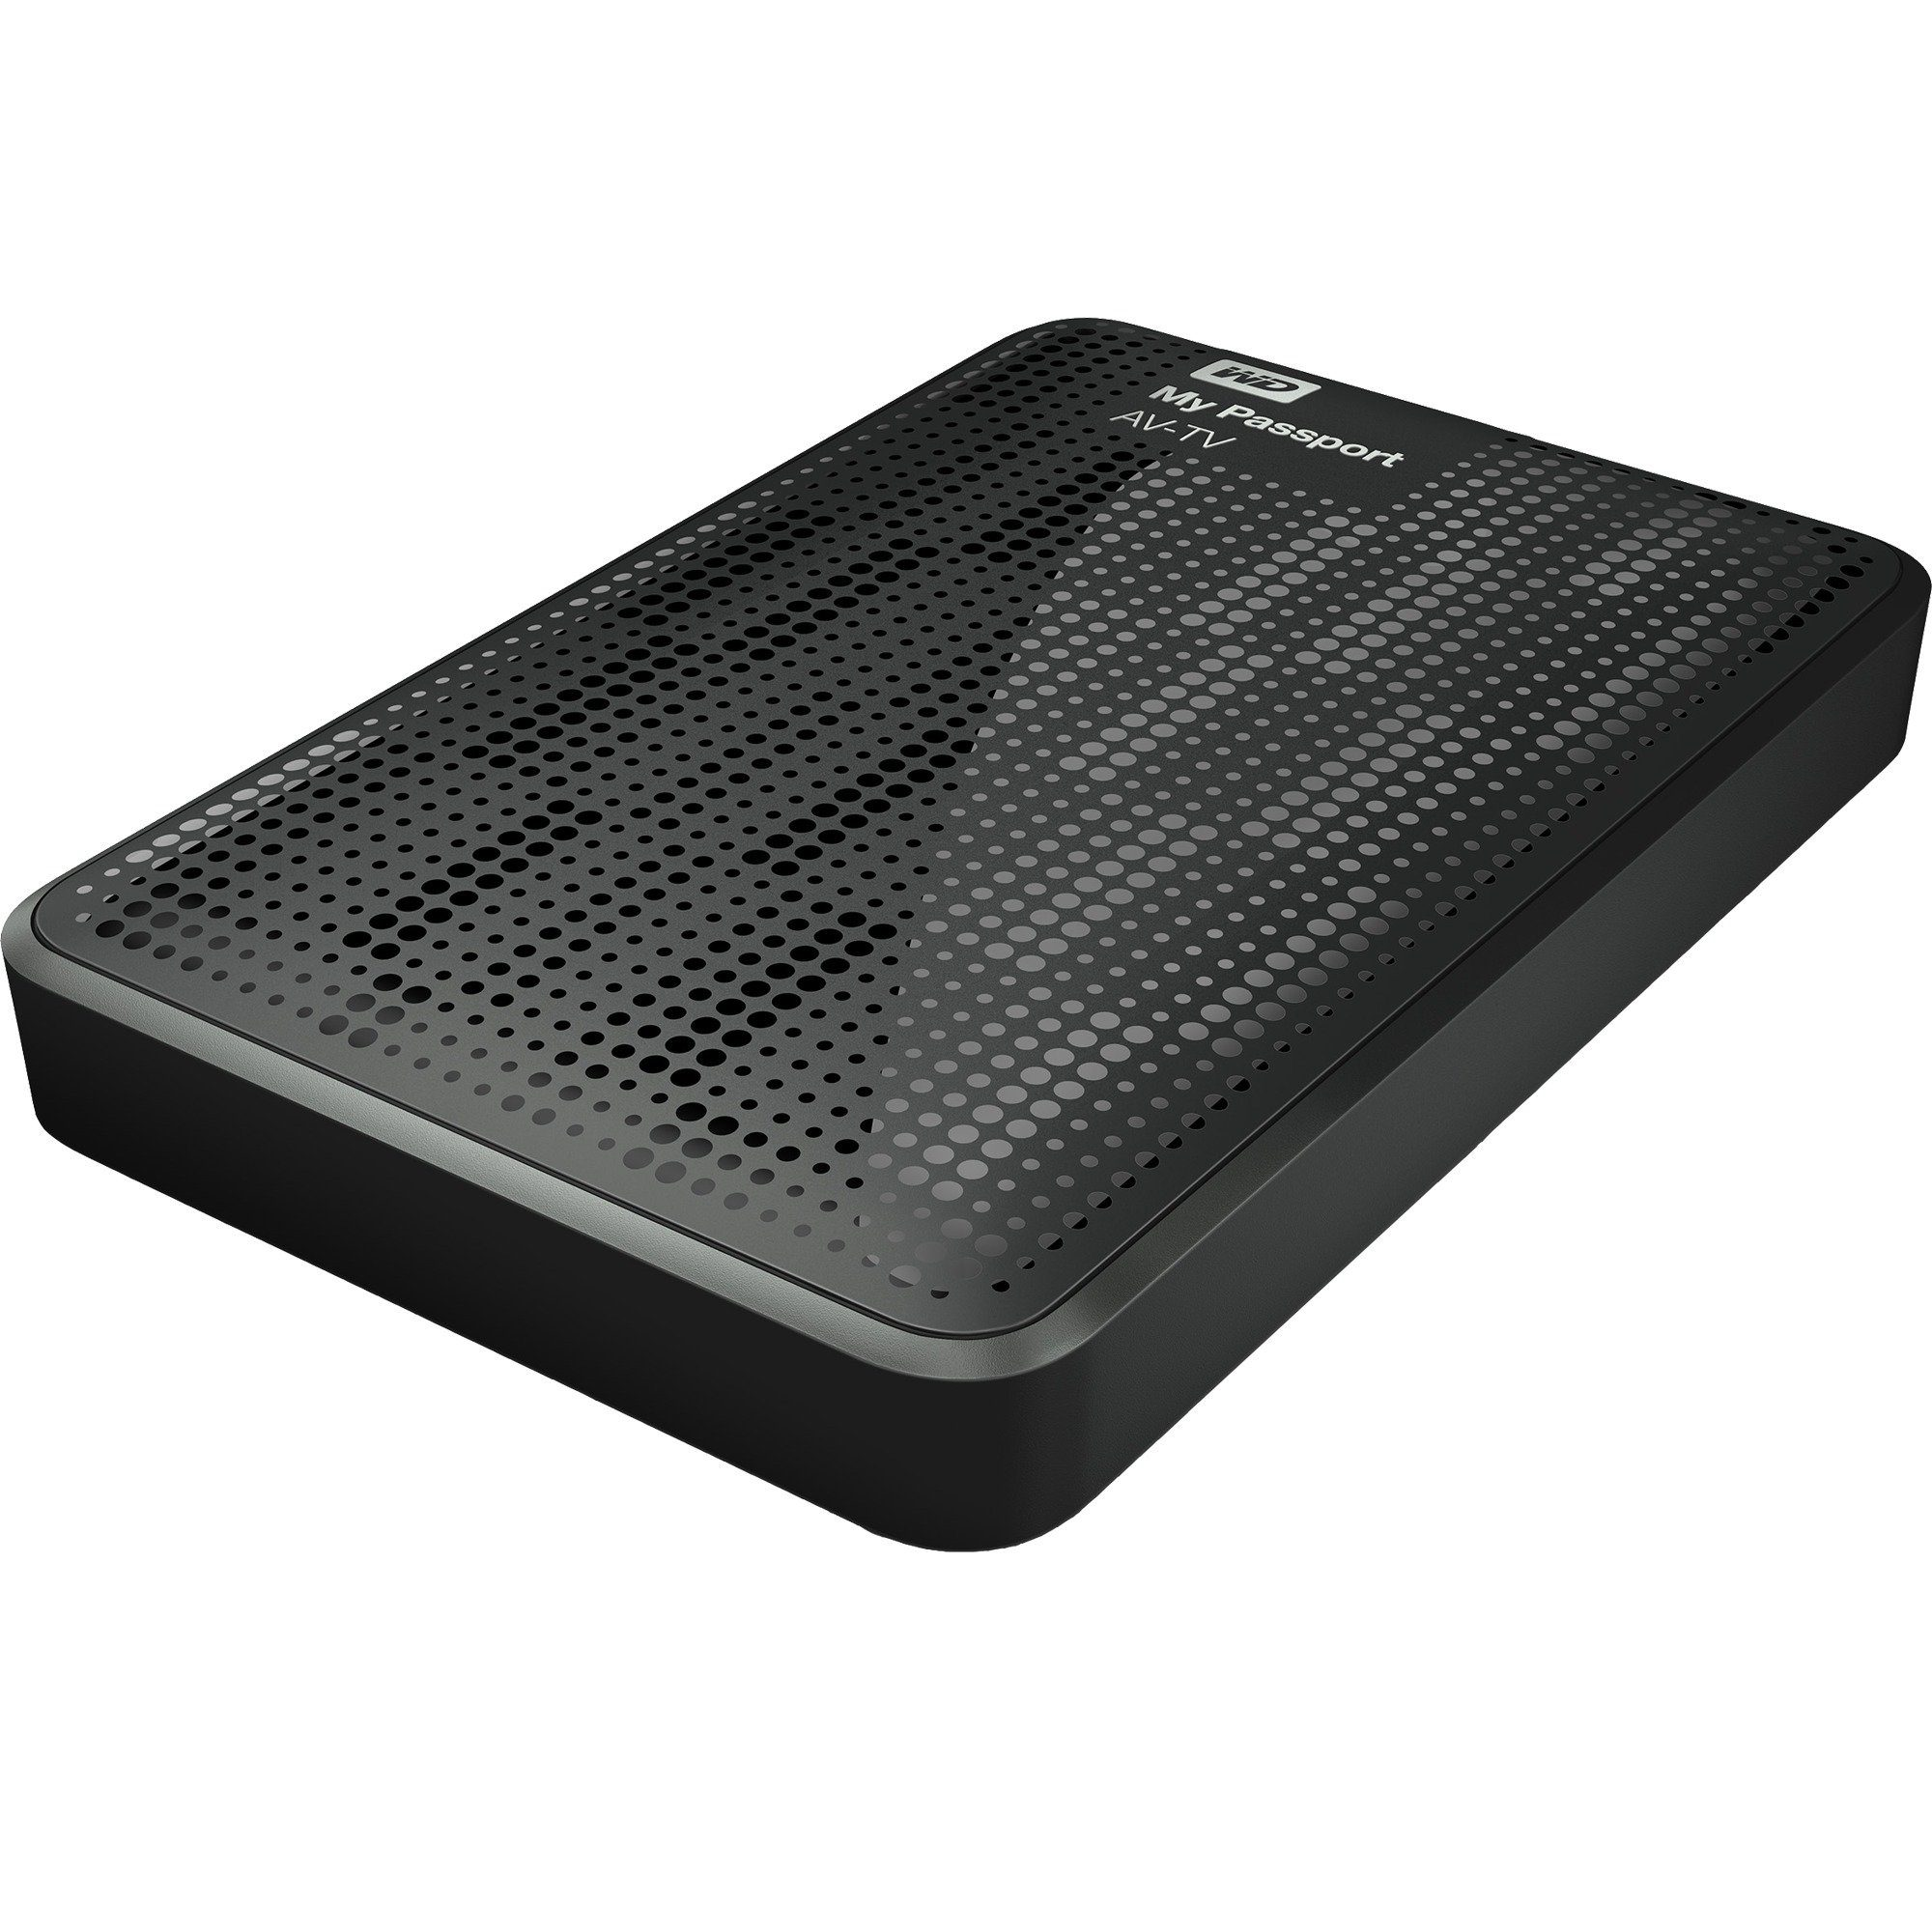 Western Digital Festplatte »My Passport AV-TV 1 TB«